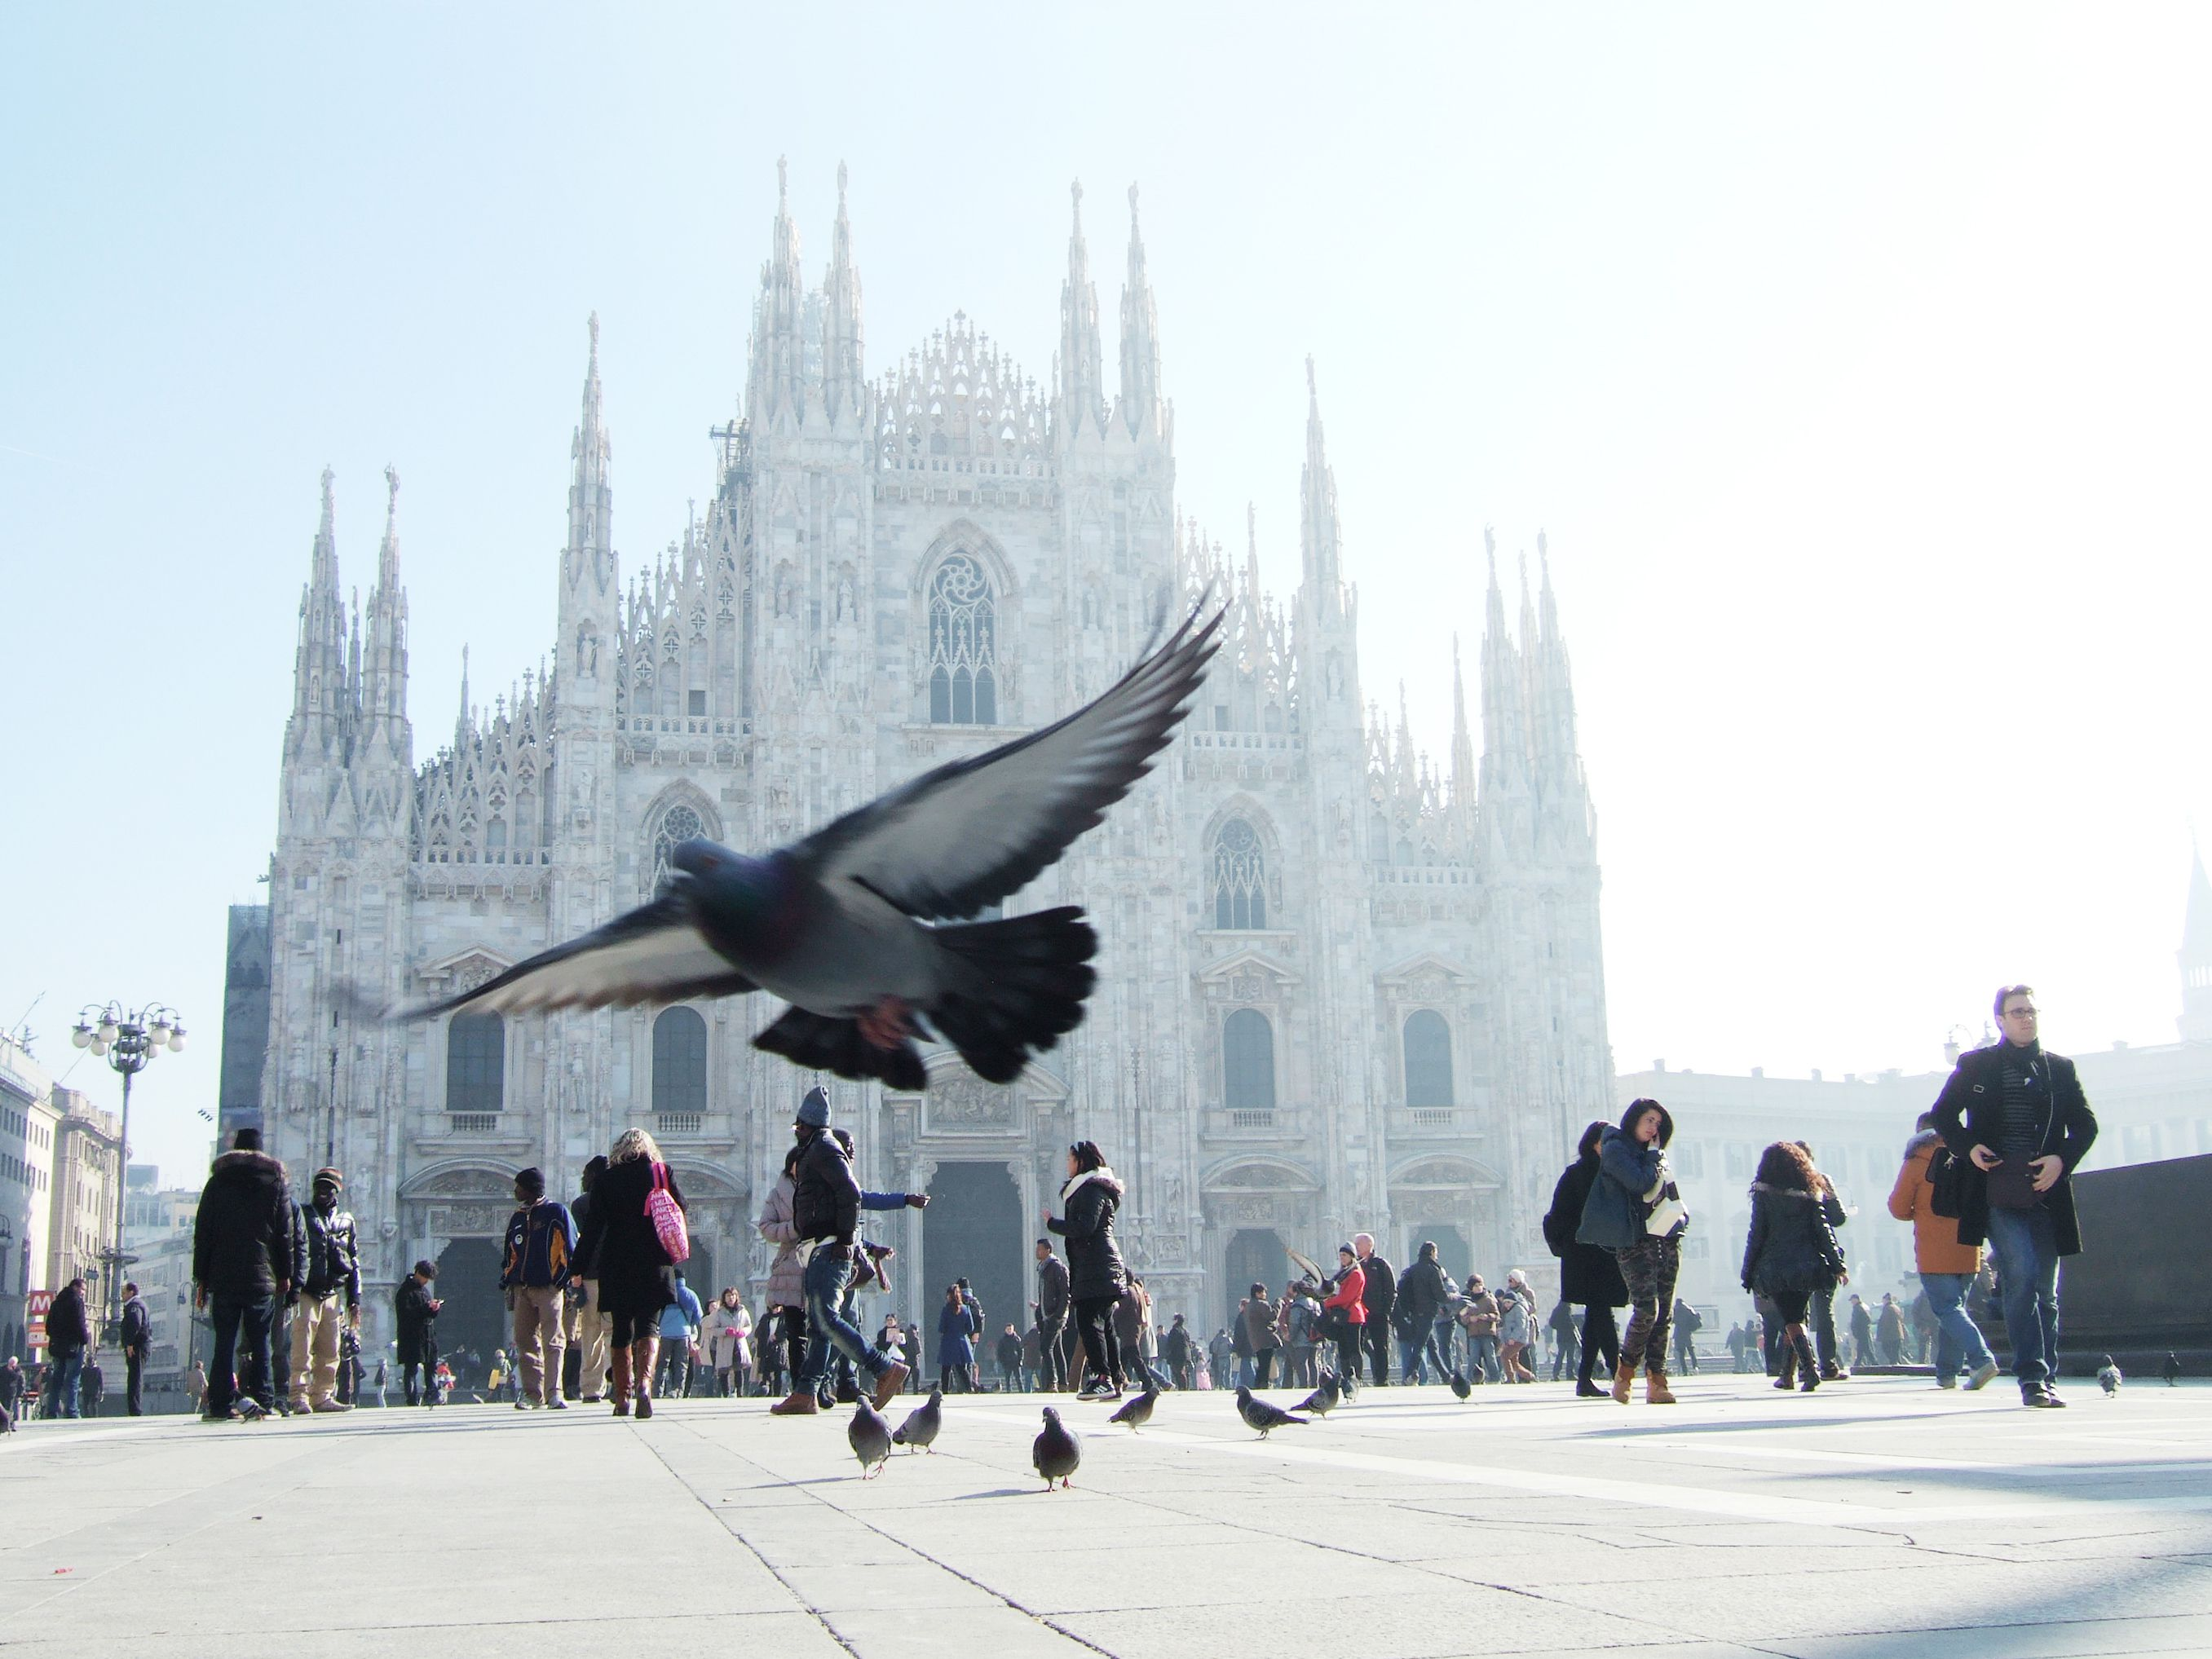 Hotel Baviera in Milan - Book a luxury hotel near from